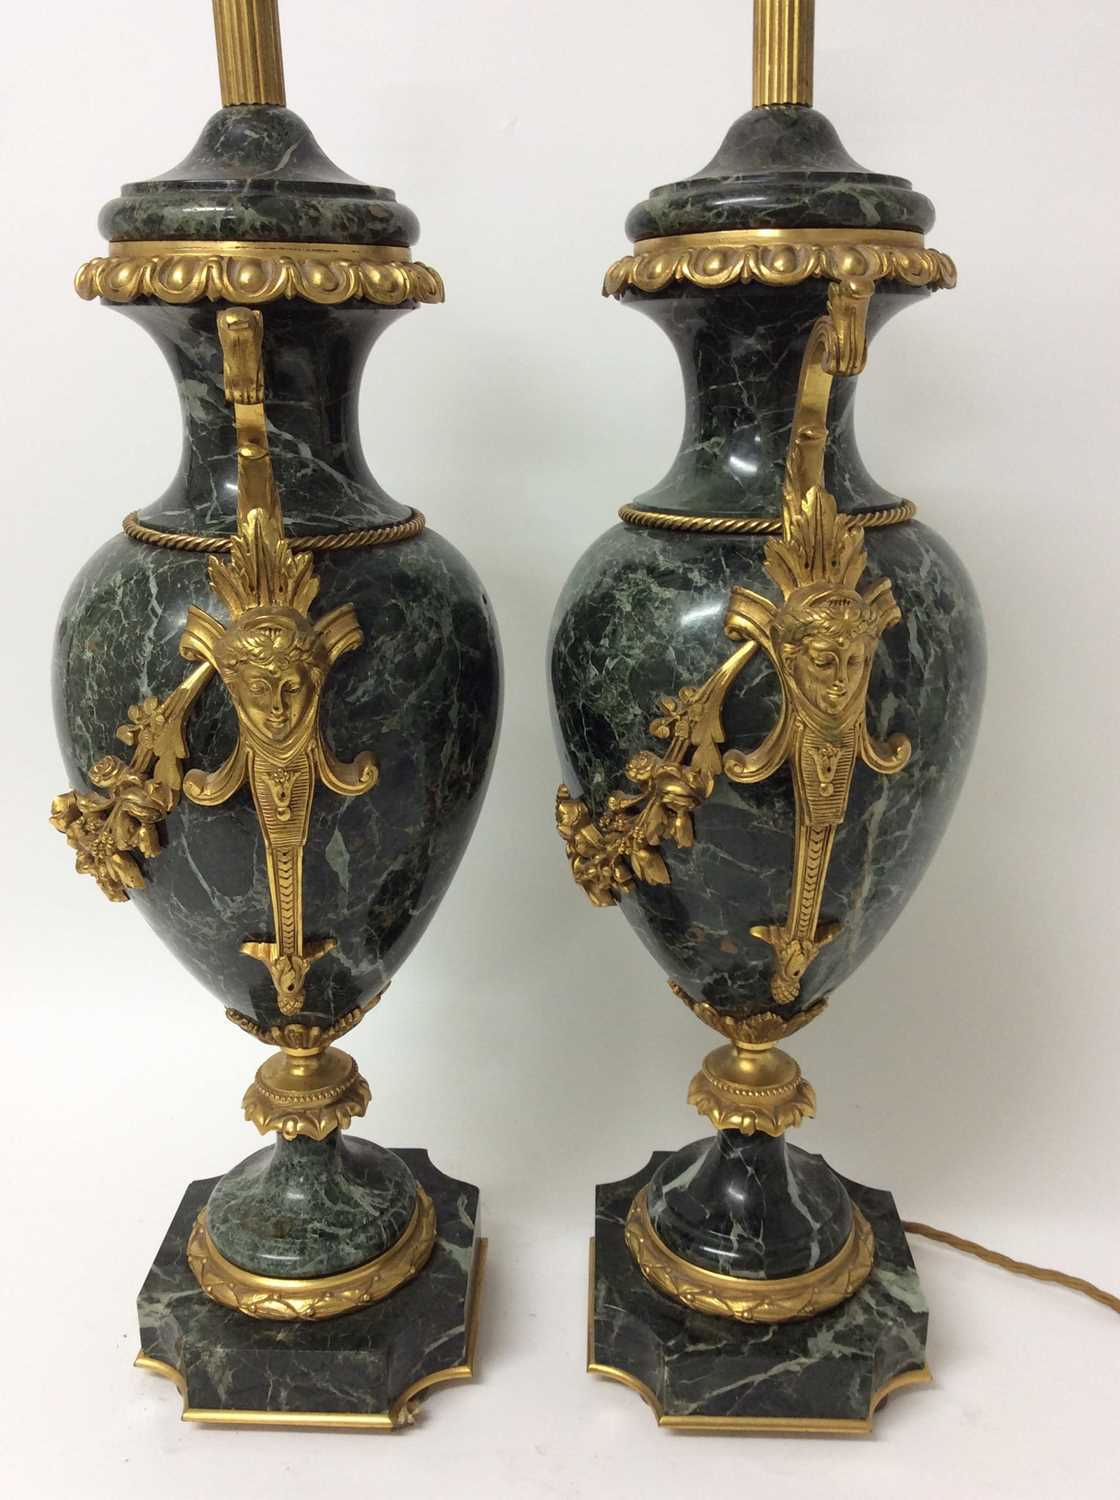 Pair of 18th century style gilt metal mounted verde antico marble table lamps, each of urn form with - Image 4 of 7